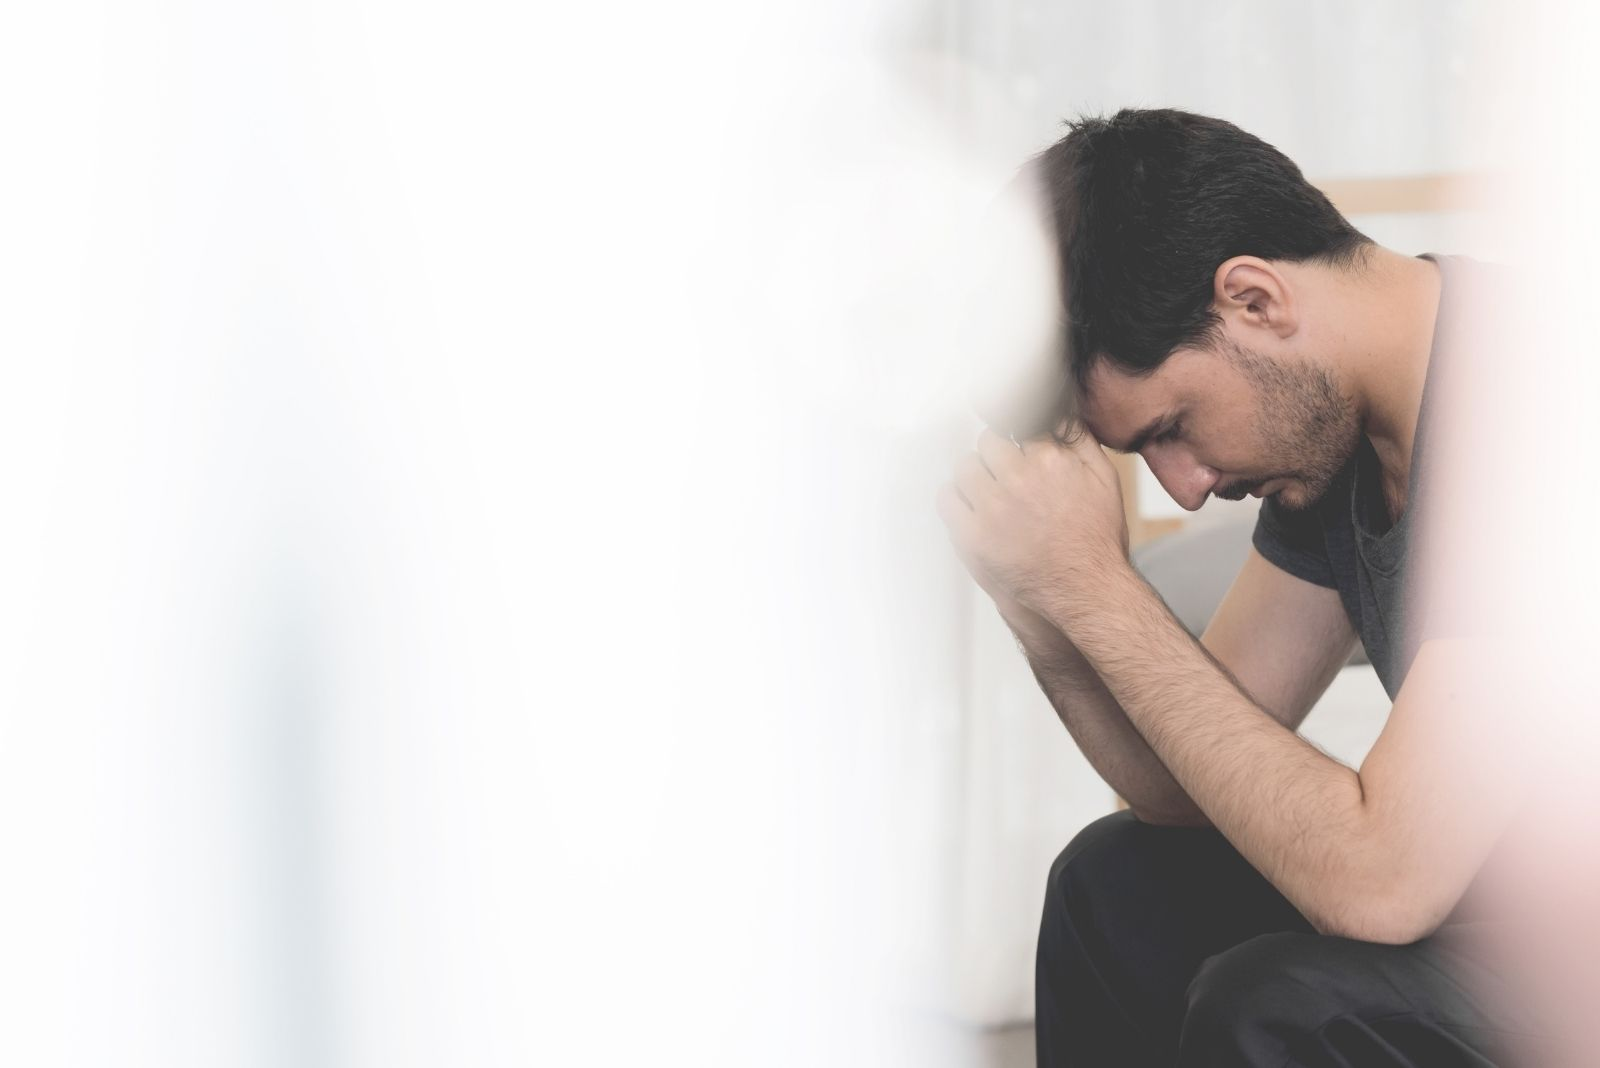 stressed and sad man sitting with image partly covered with white thing